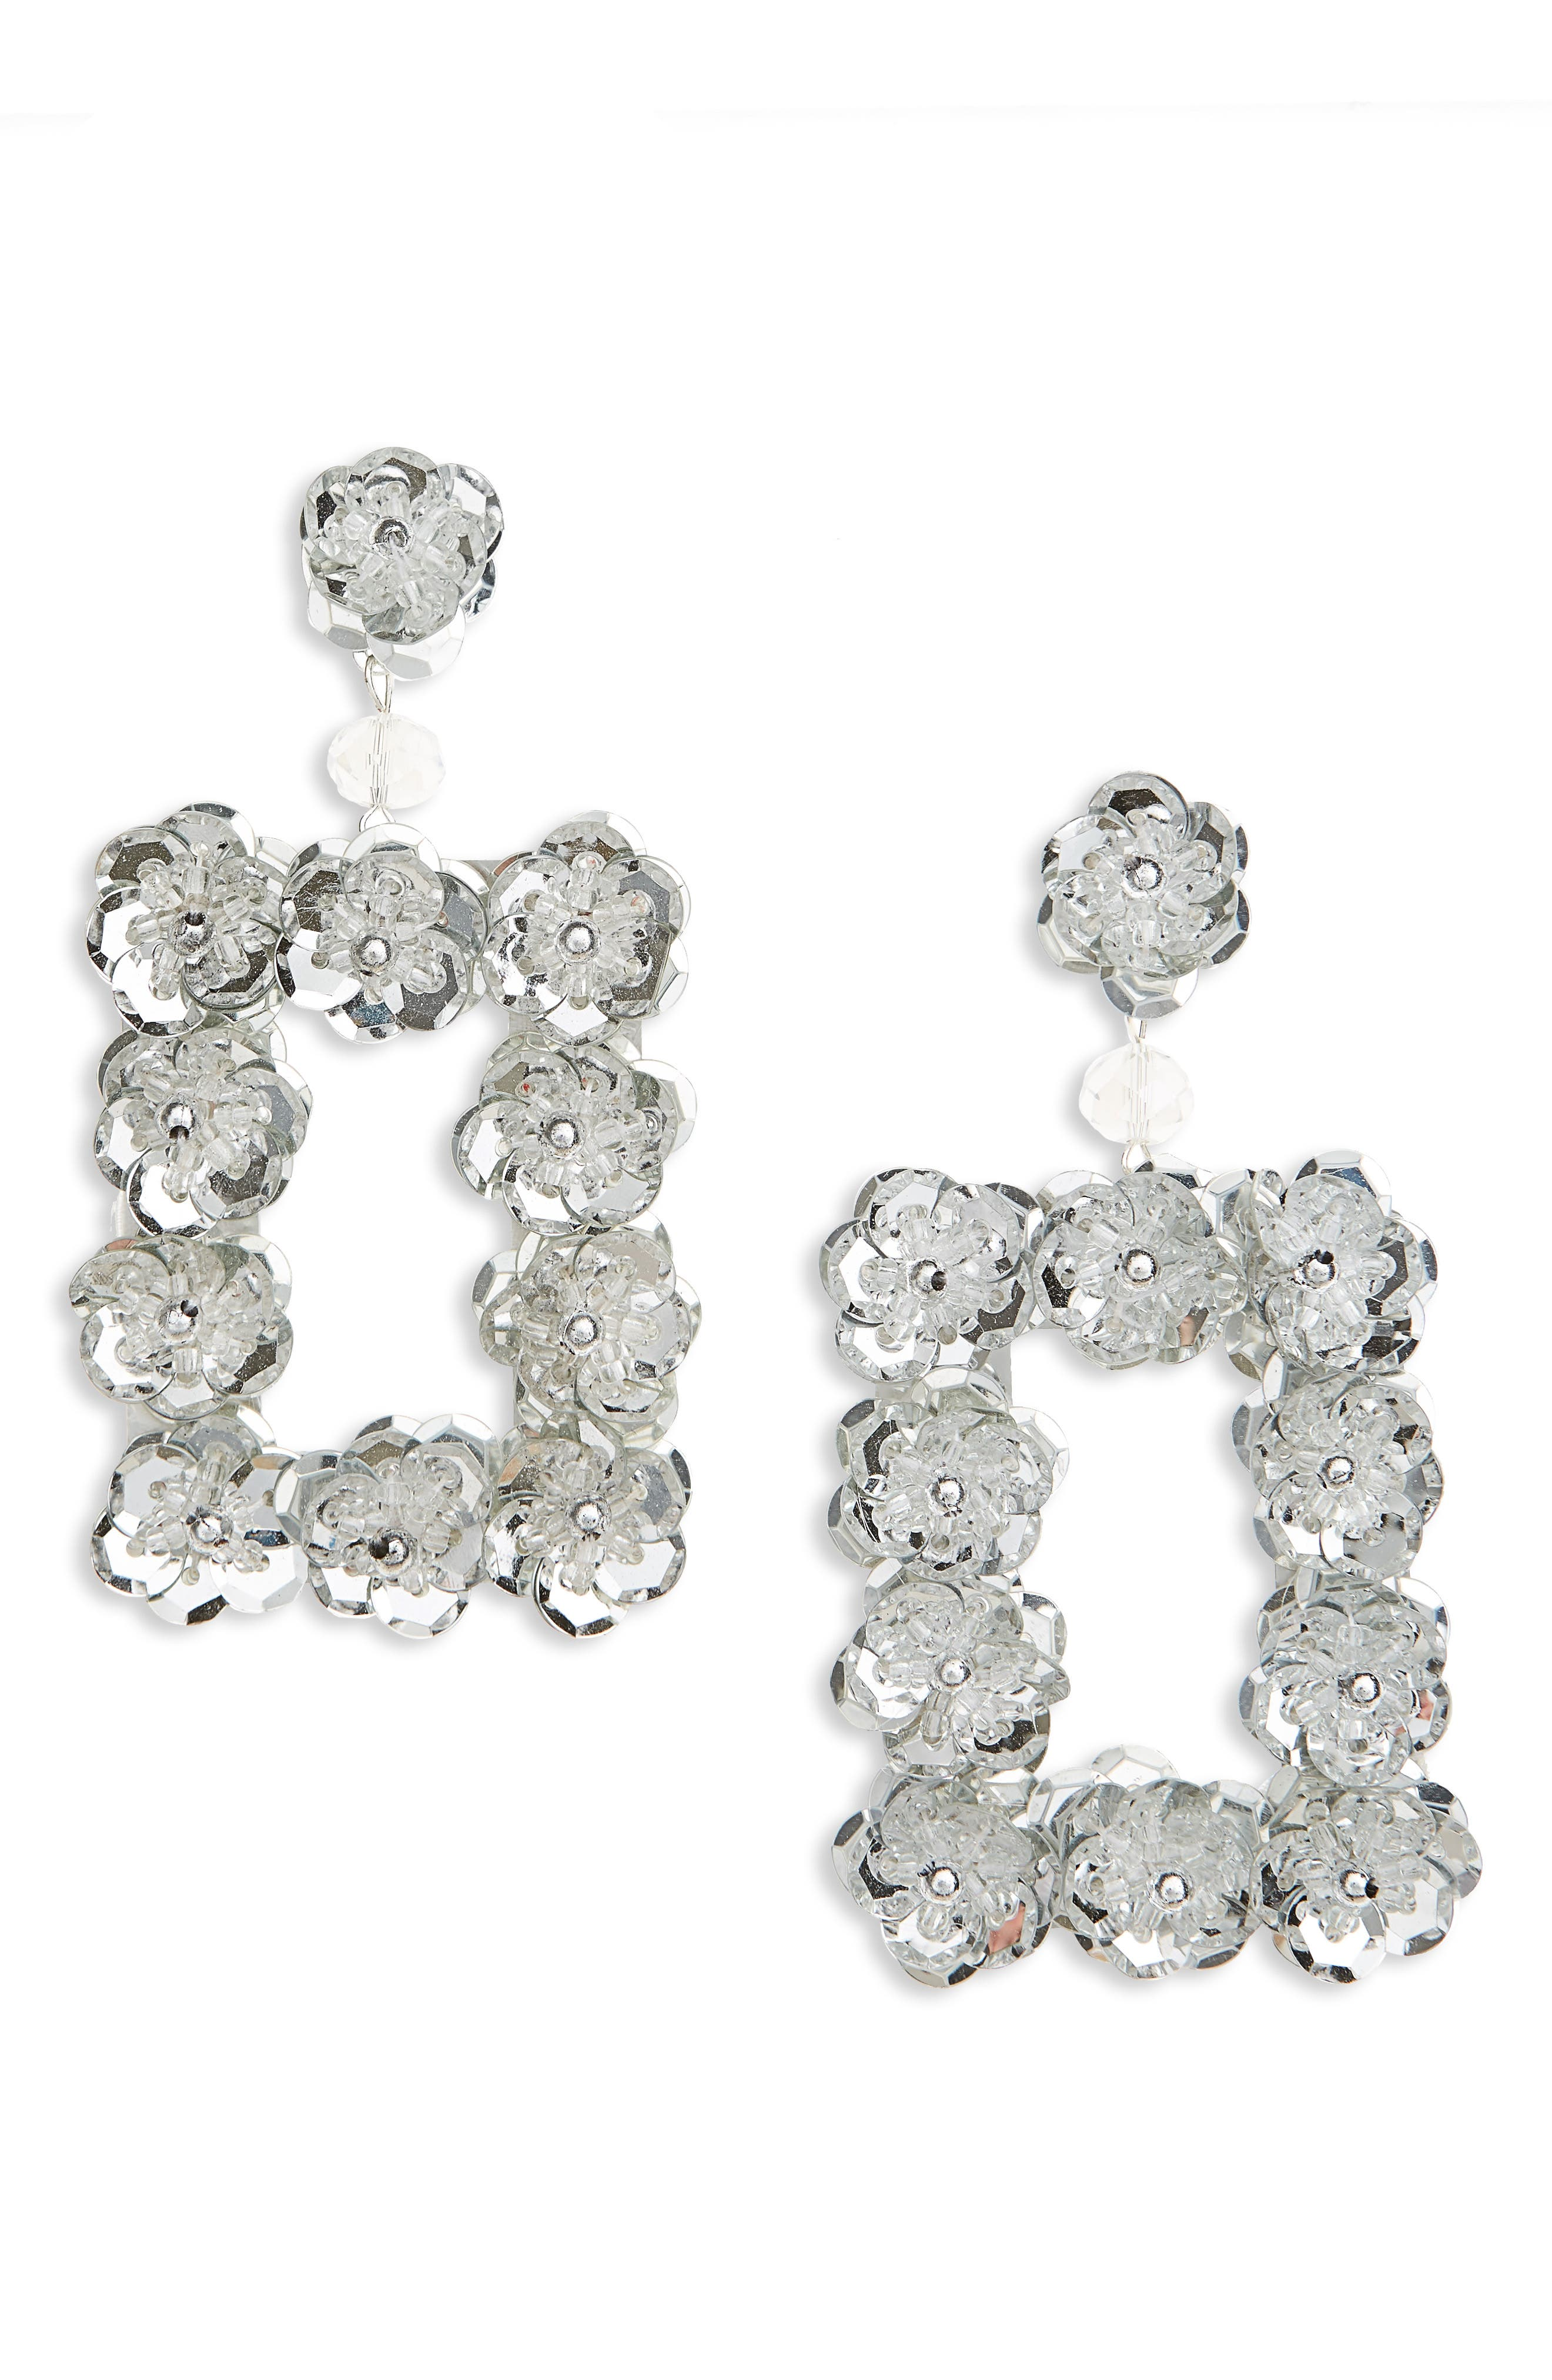 Opulent Floral Square Earrings,                             Main thumbnail 1, color,                             Silver/ Crystal